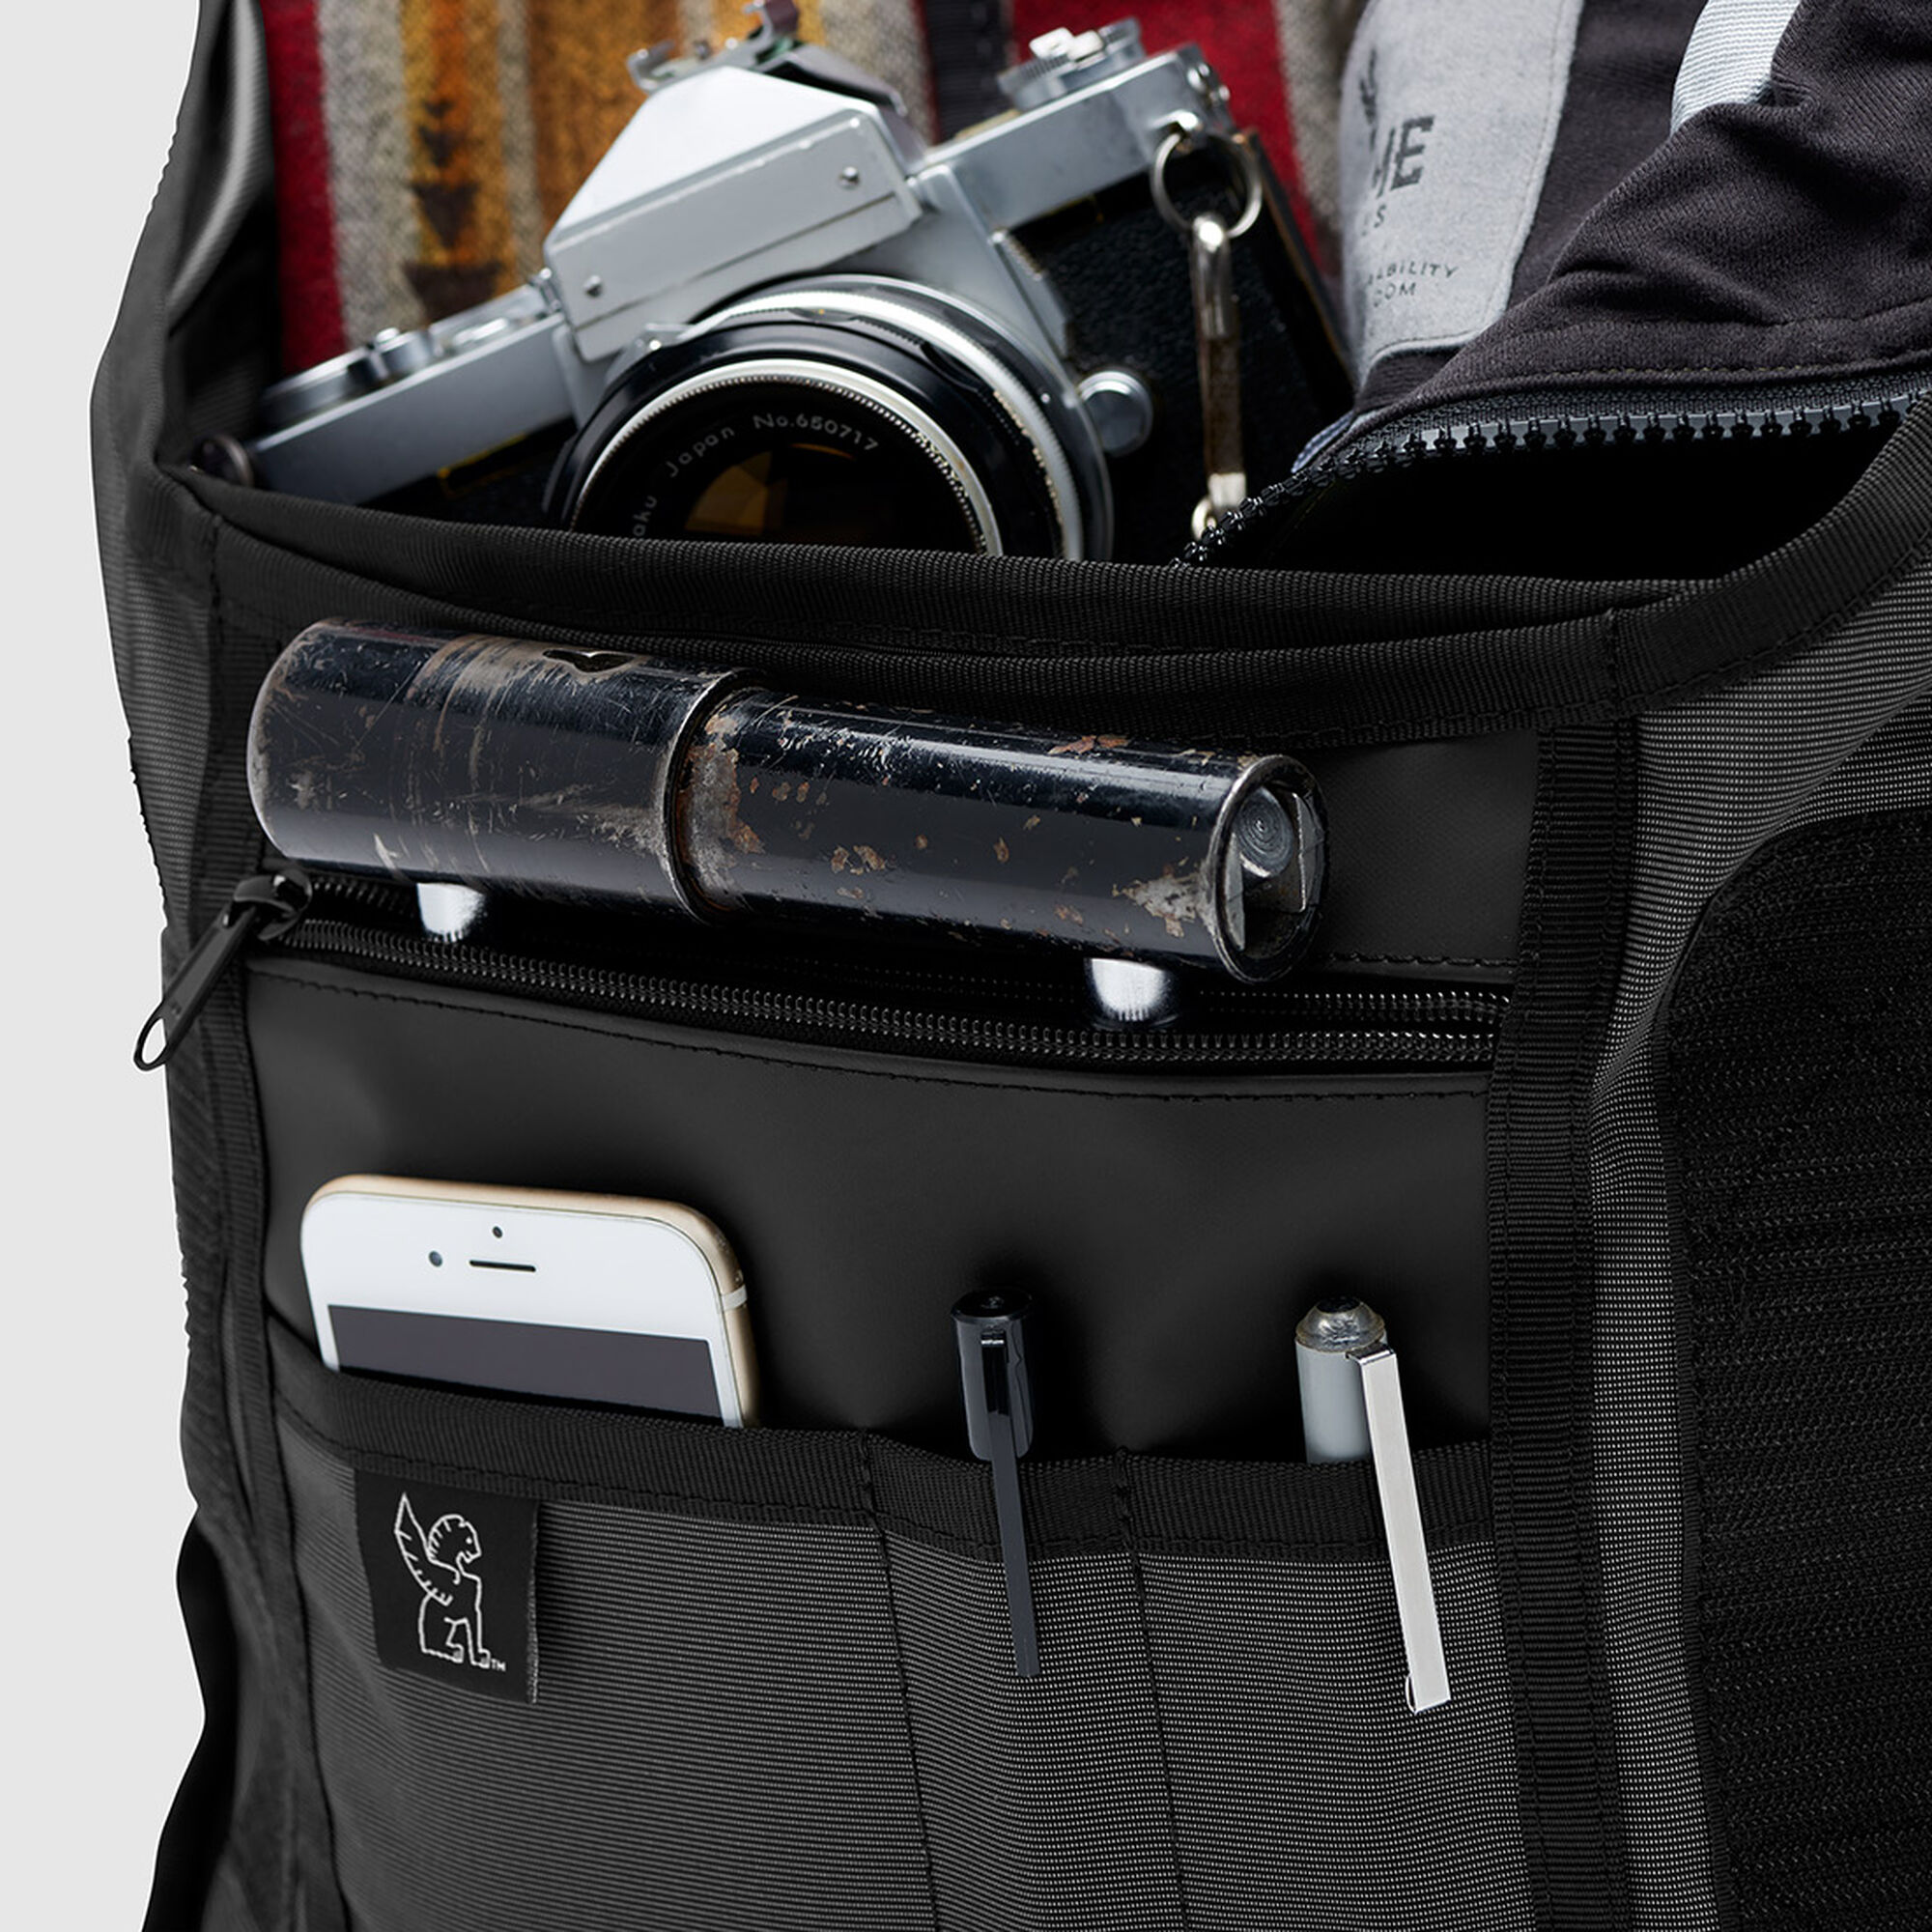 The Welterweight Mini Metro Messenger Bag In Charcoal Black Small View